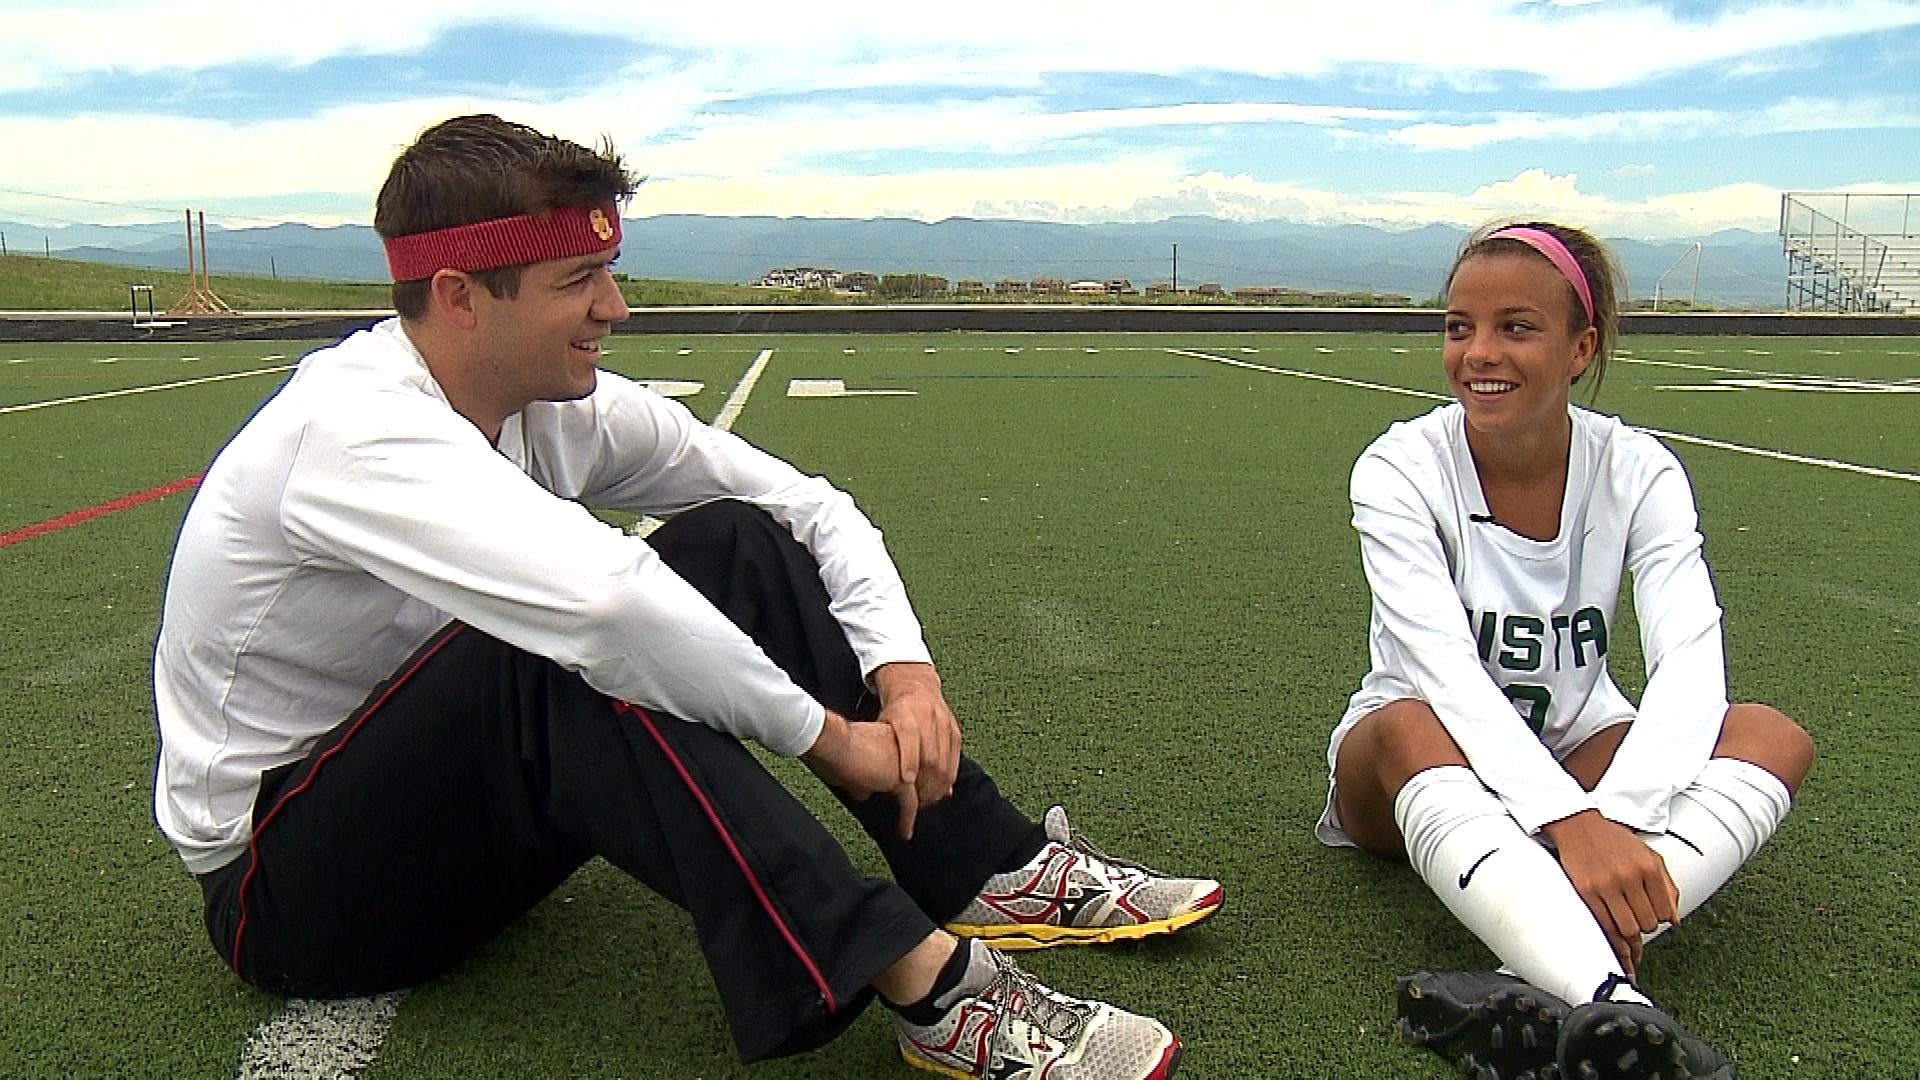 CBS4's Mark Haas chats with Mallory Pugh (credit: CBS)